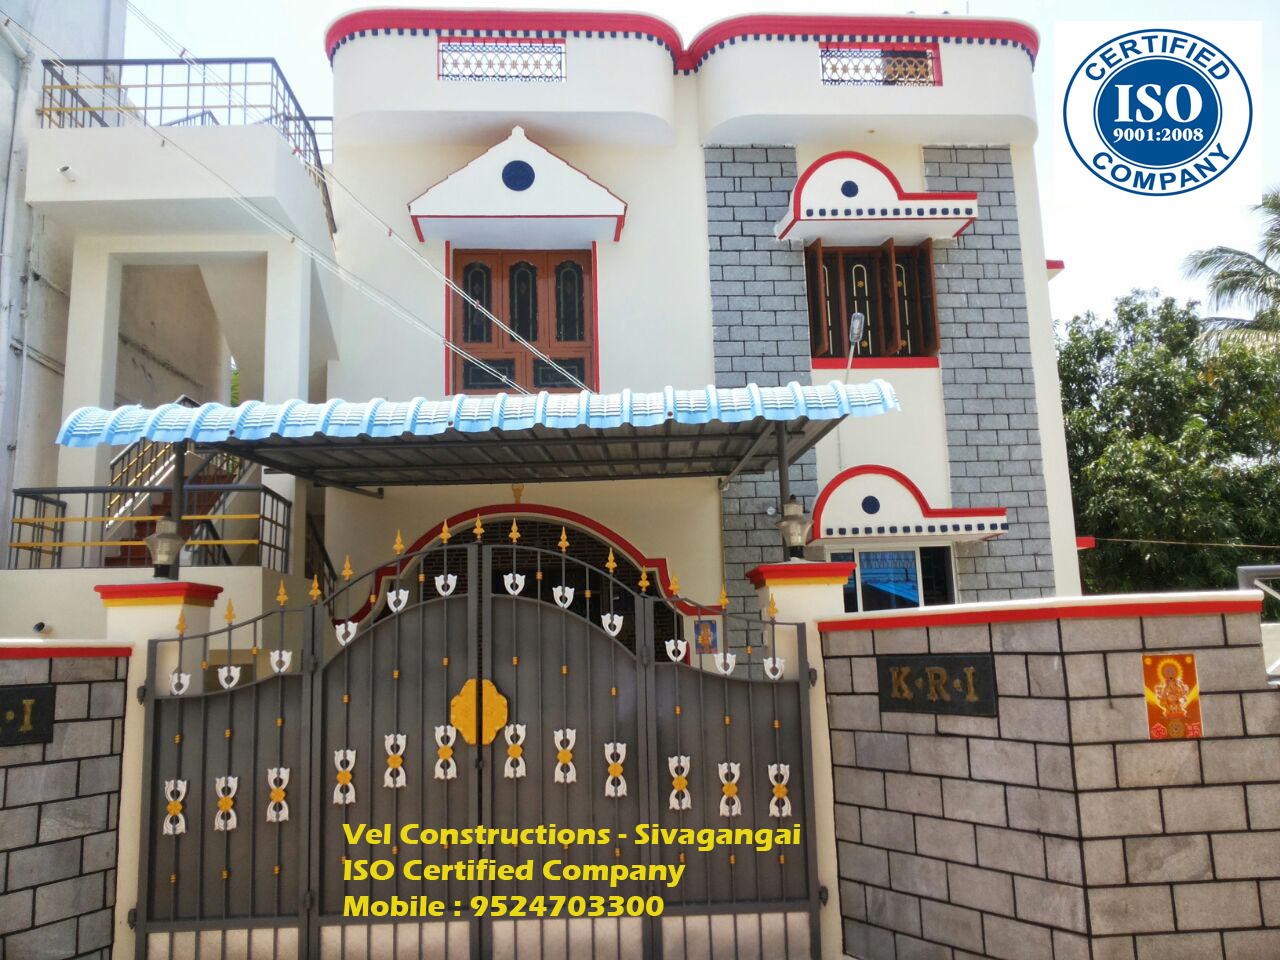 vel constructions in sivagangai